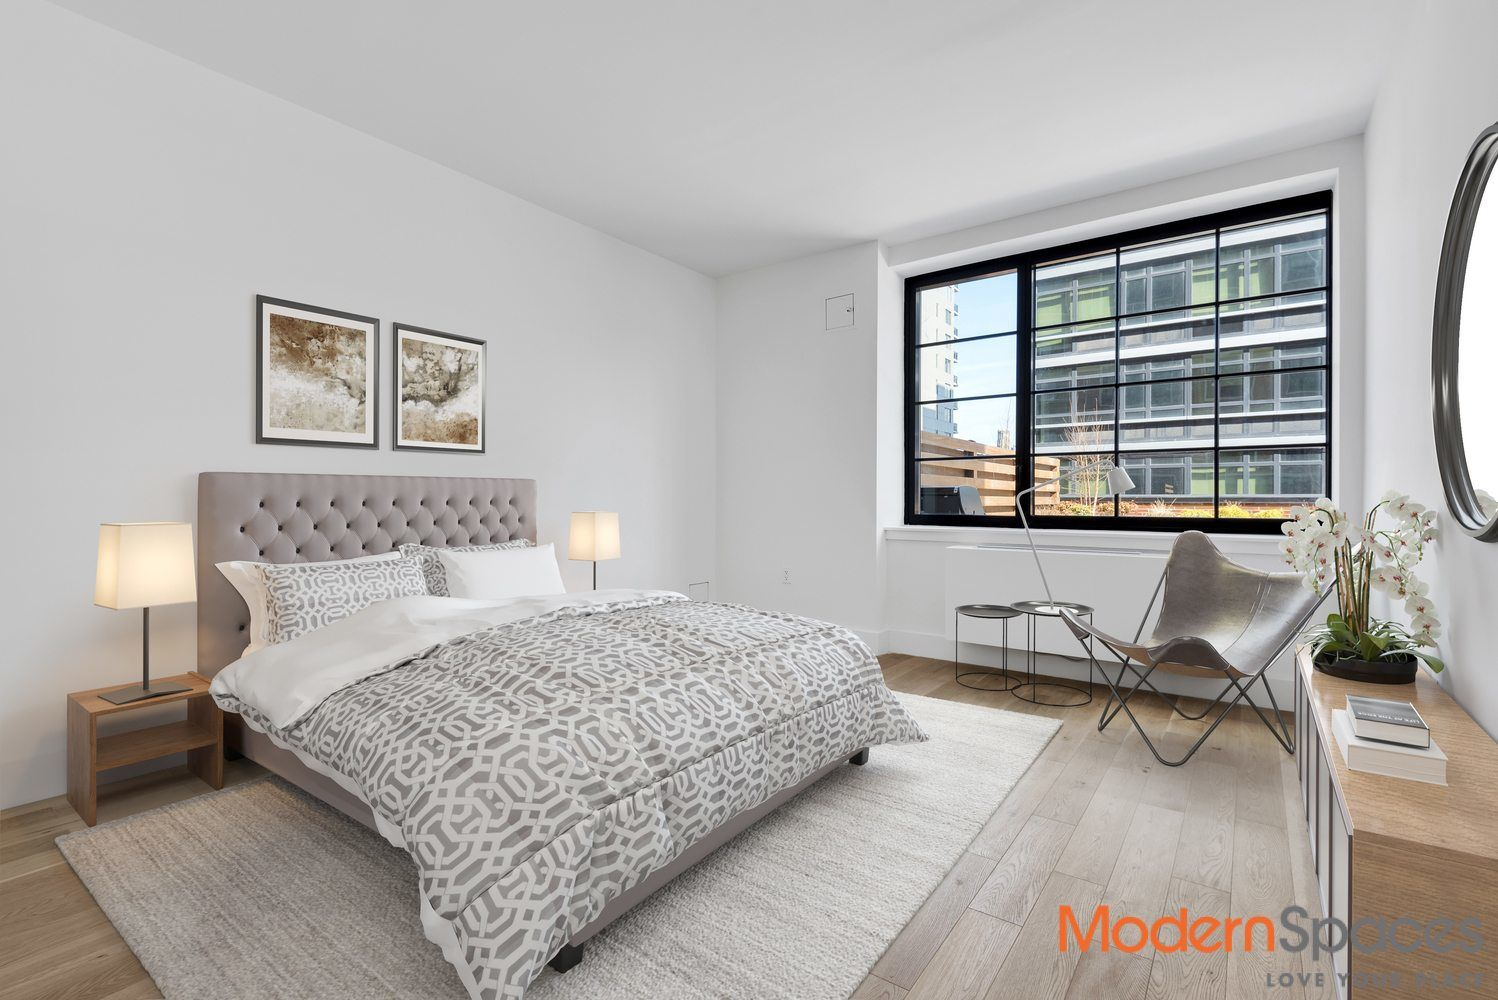 The Harrison, New To Market, 2 Bedrooms And 2 Baths Photo 4 - MODERNSPACESNYC-139631